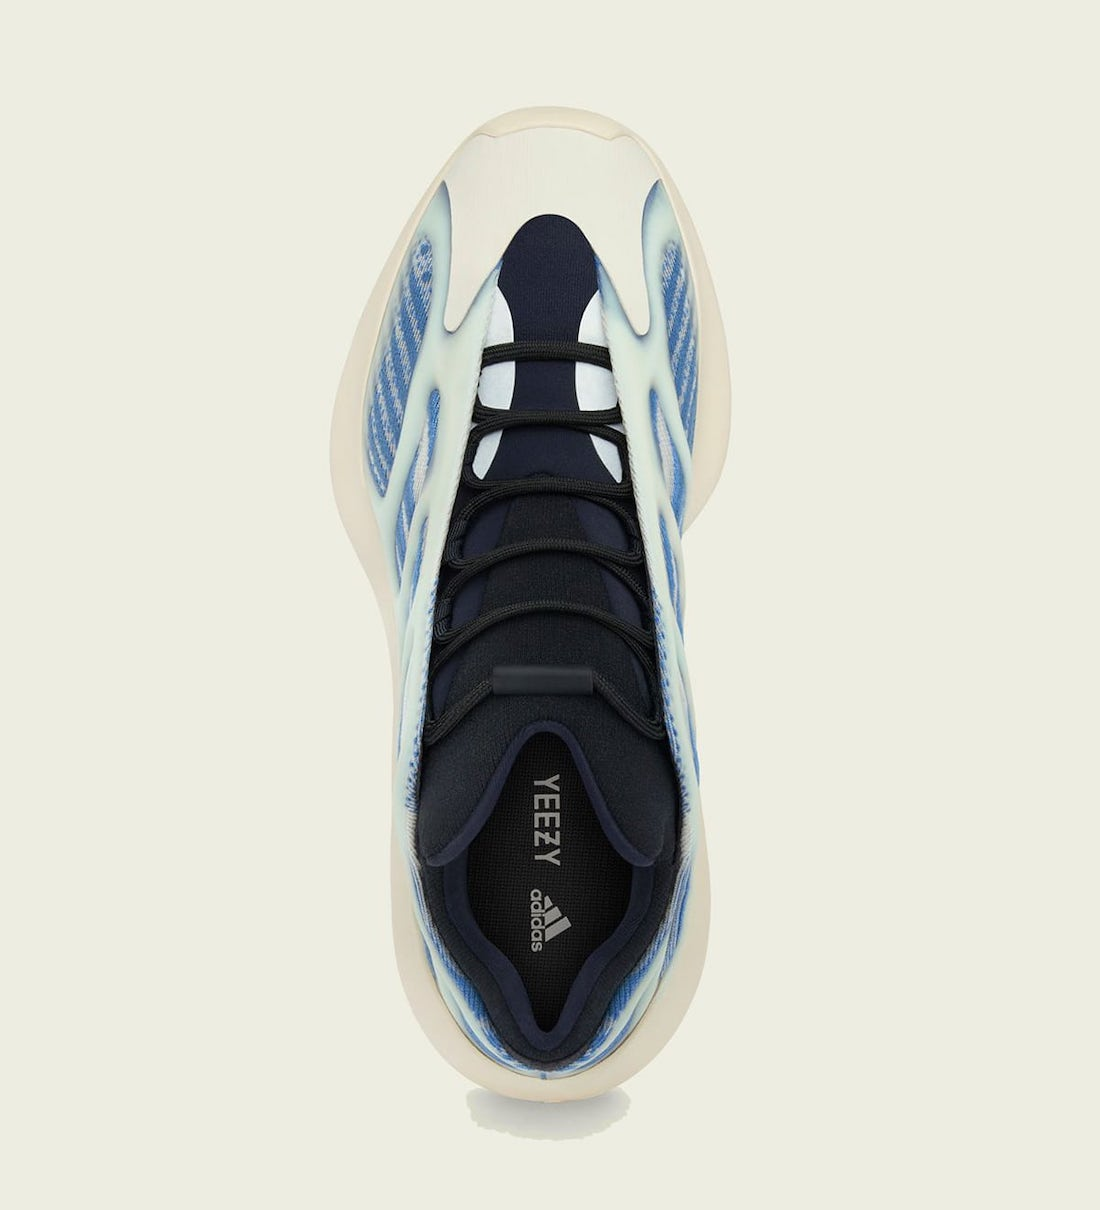 adidas-Yeezy-700-V3-Kyanite-GY0260-Release-Date-3